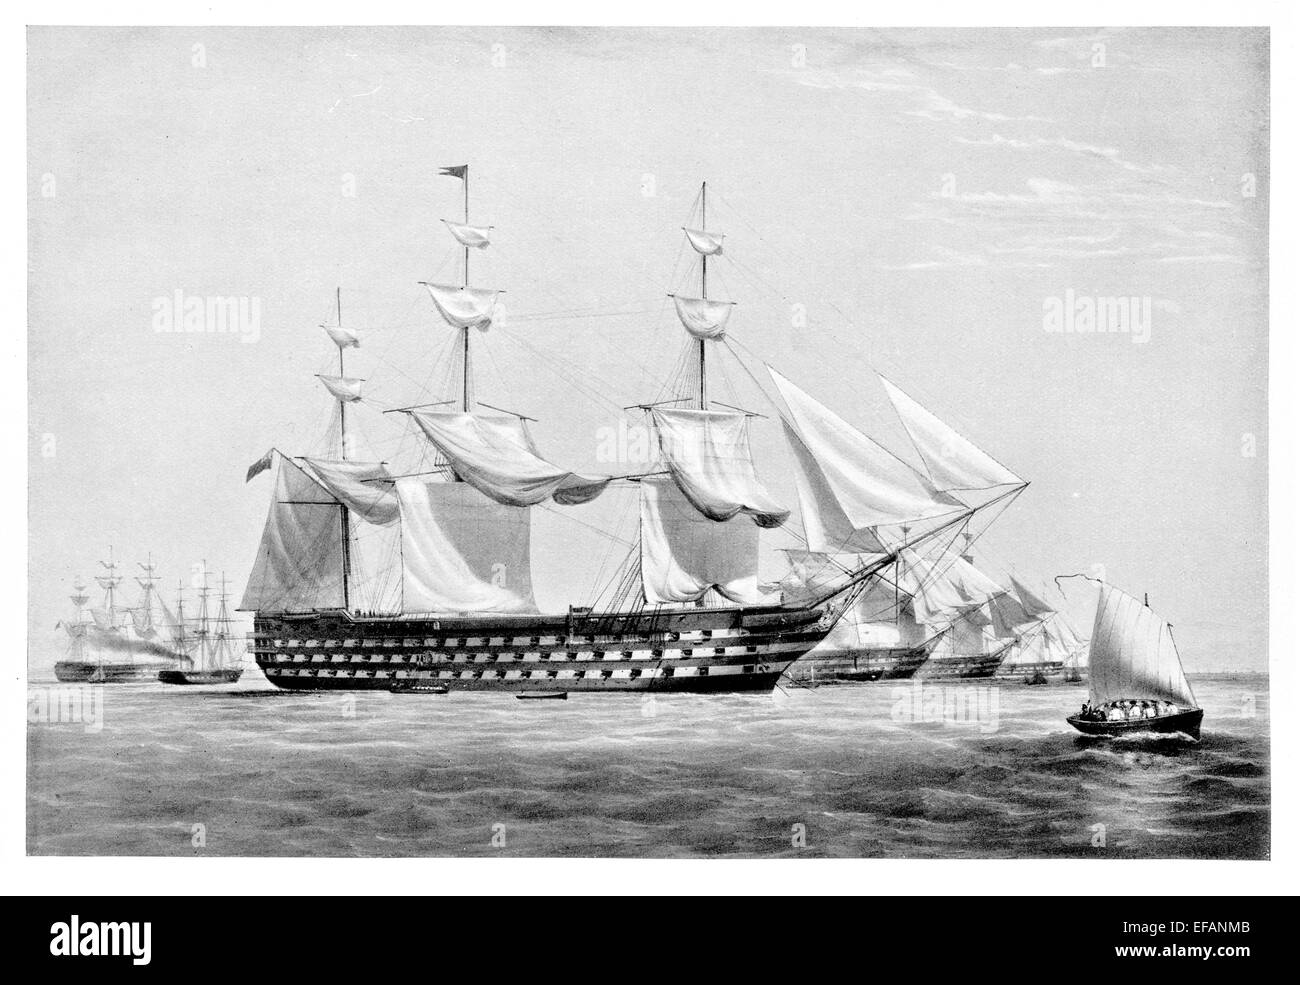 H.M.S. Duke of Wellington 131 gun Launched 1852 as Pembroke. Lord Napier's Flagship in Russian War. Latter Depot - Stock Image